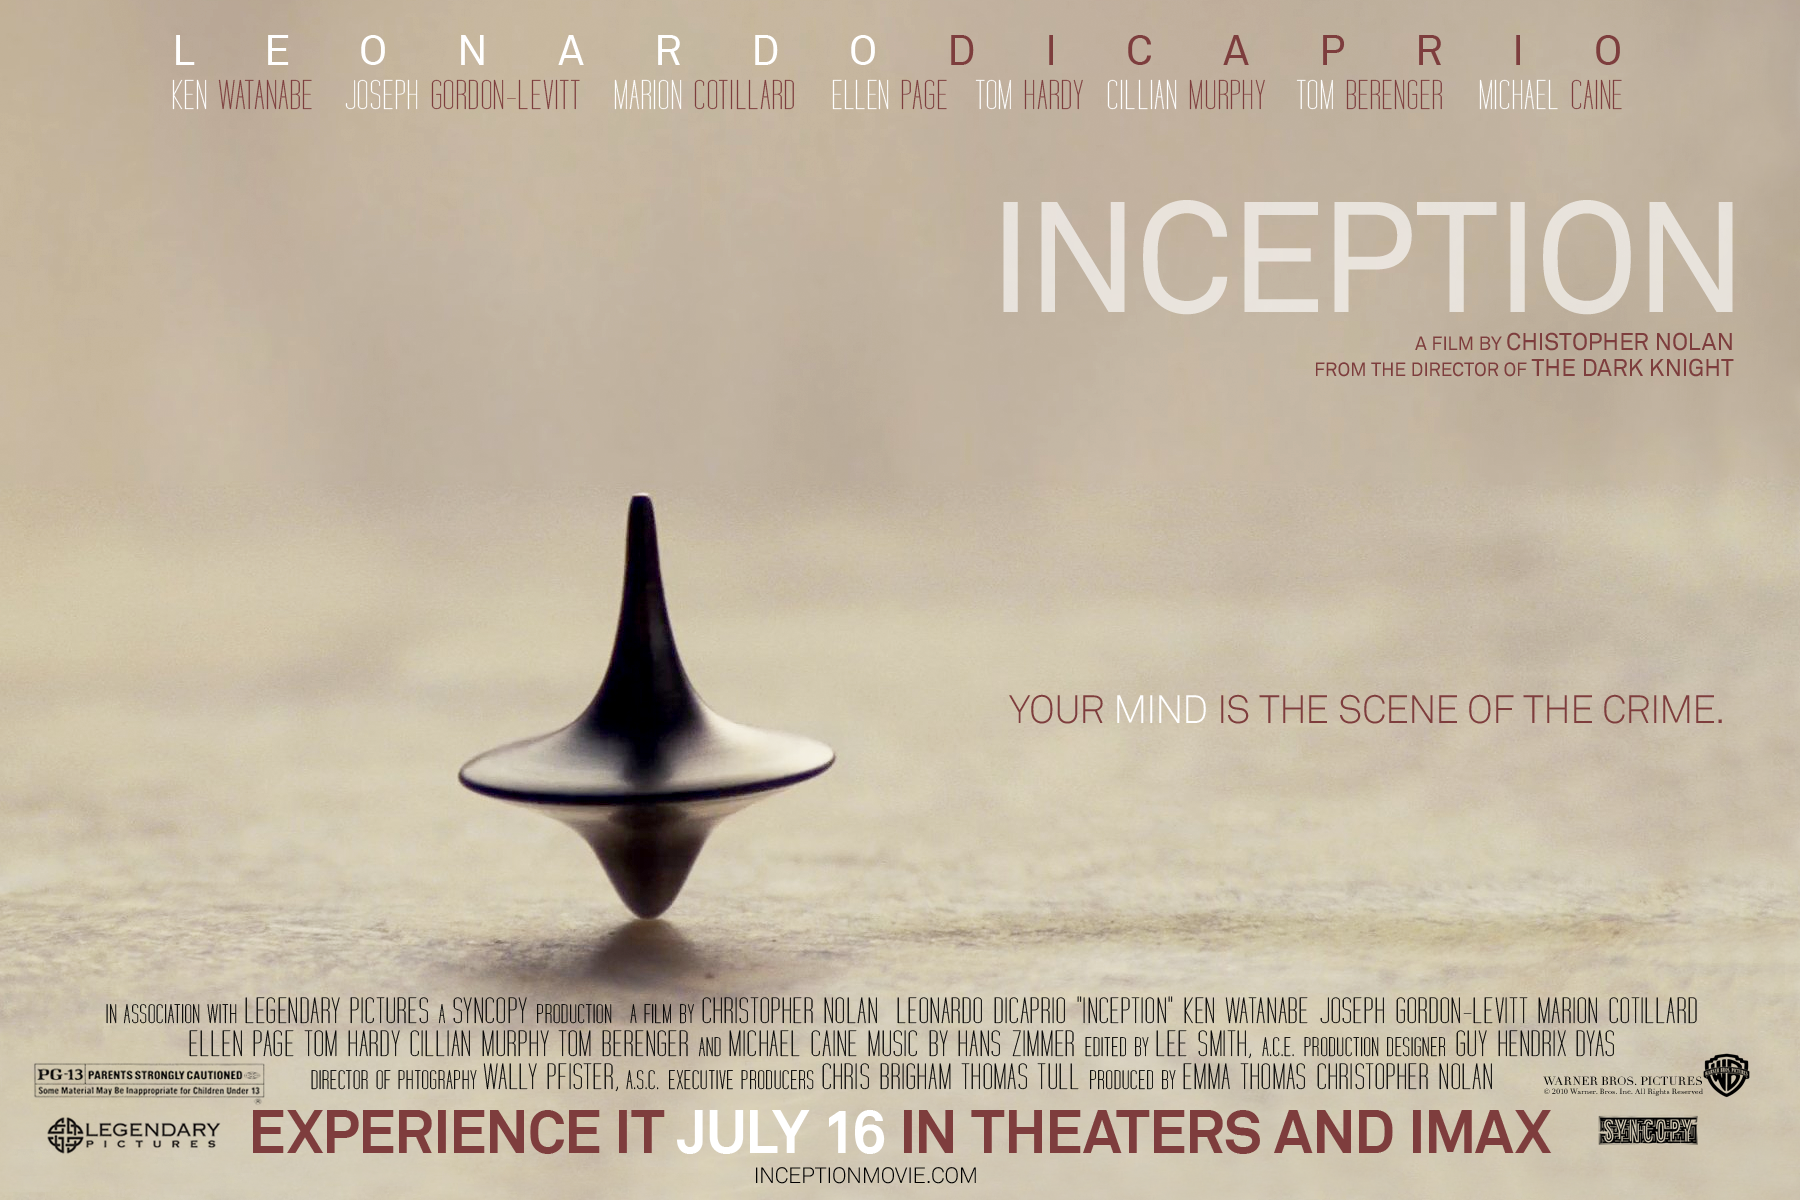 The movie inception